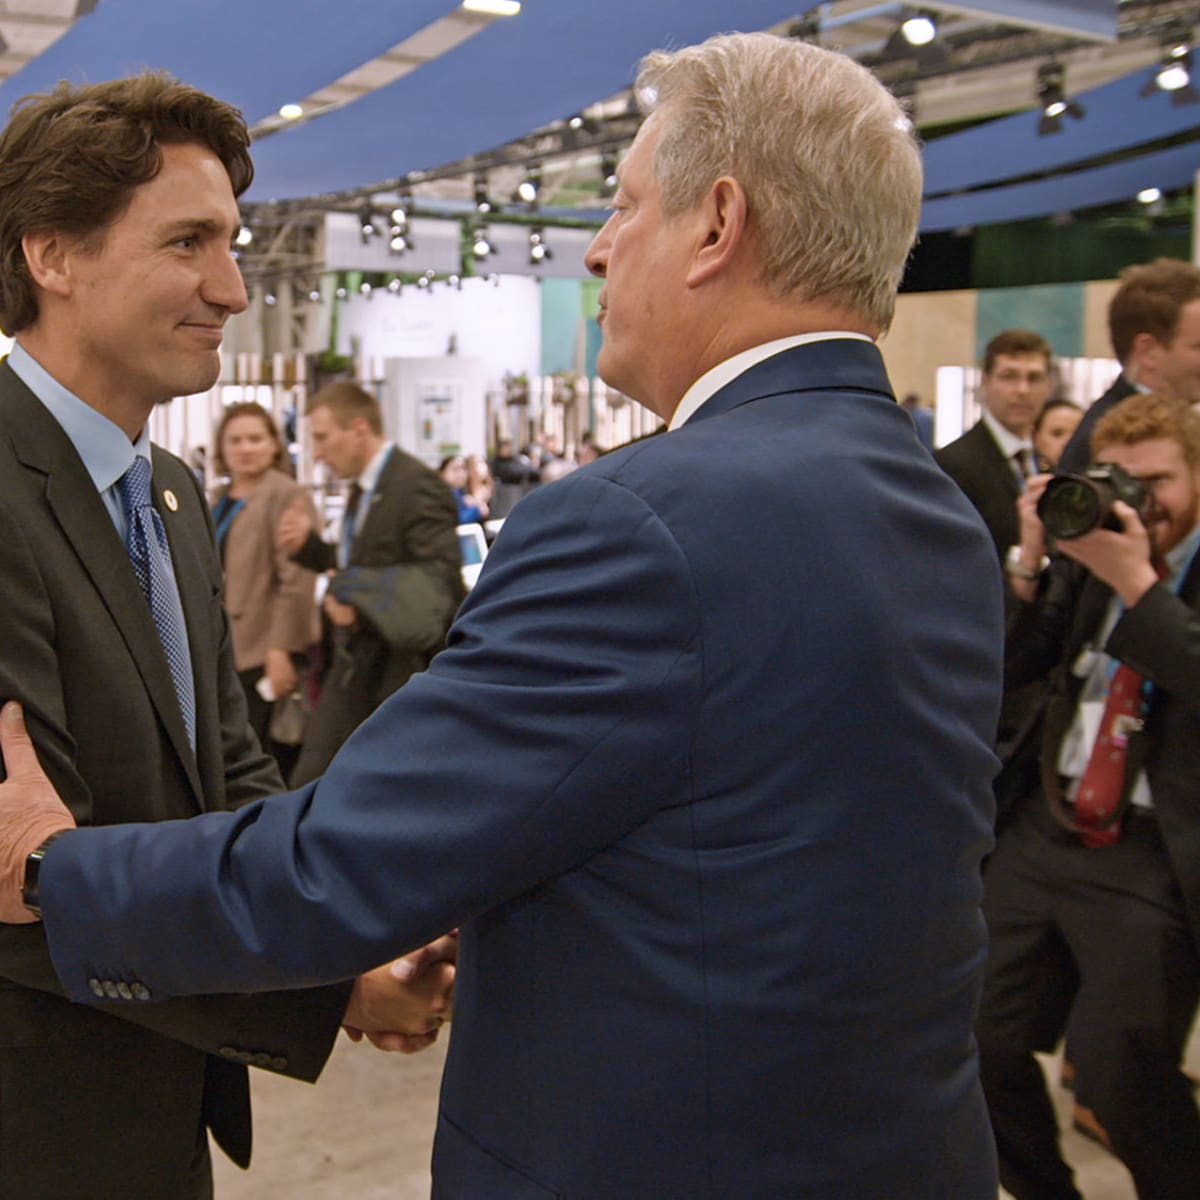 Justin Trudeau and Al Gore in An Inconvenient Sequel: Truth to Power